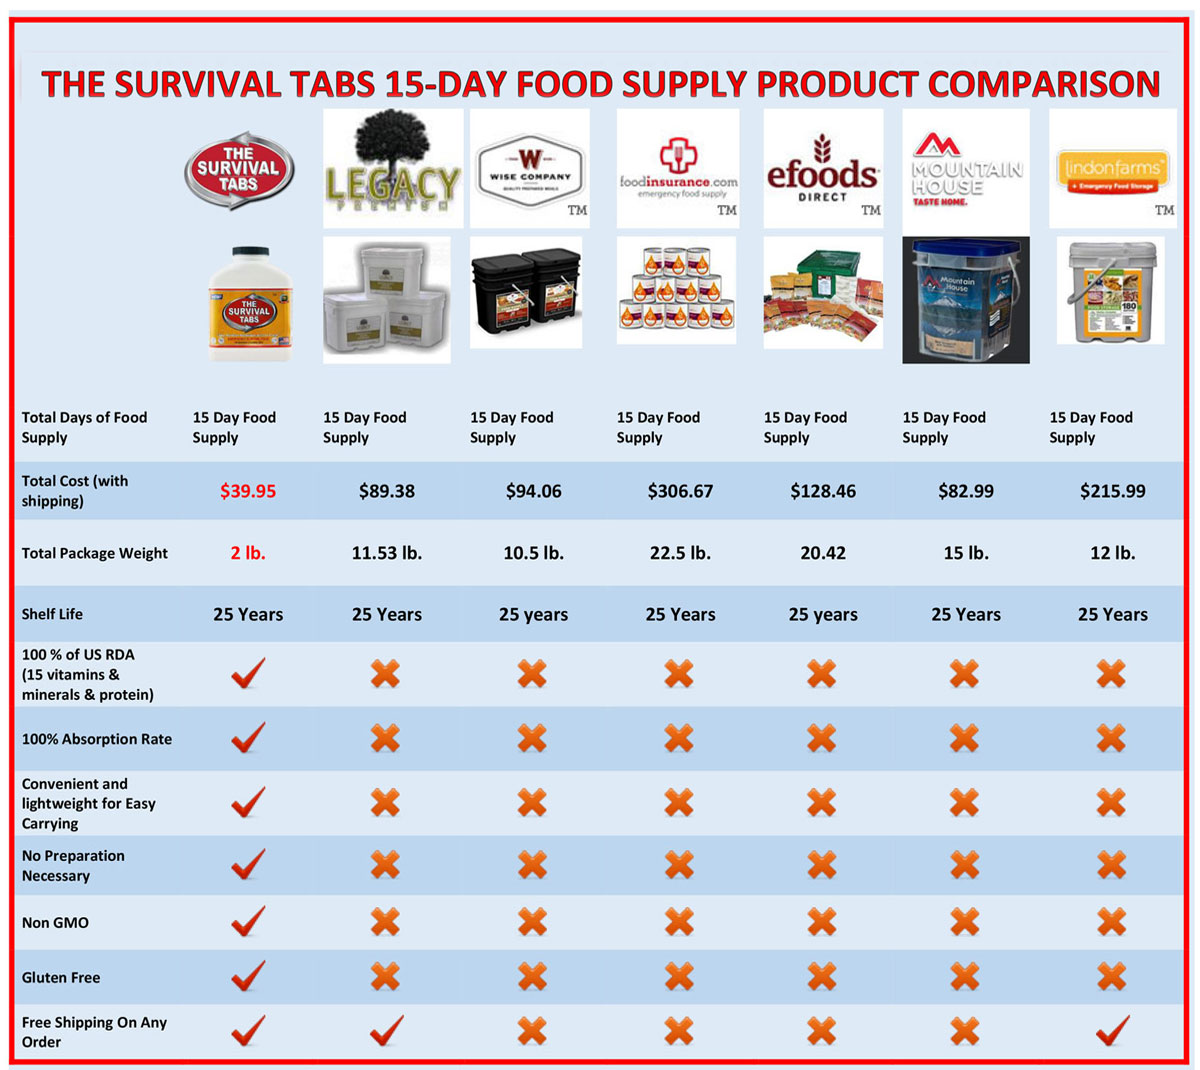 Survival-Tabs-Product-Comparison-10-27-14